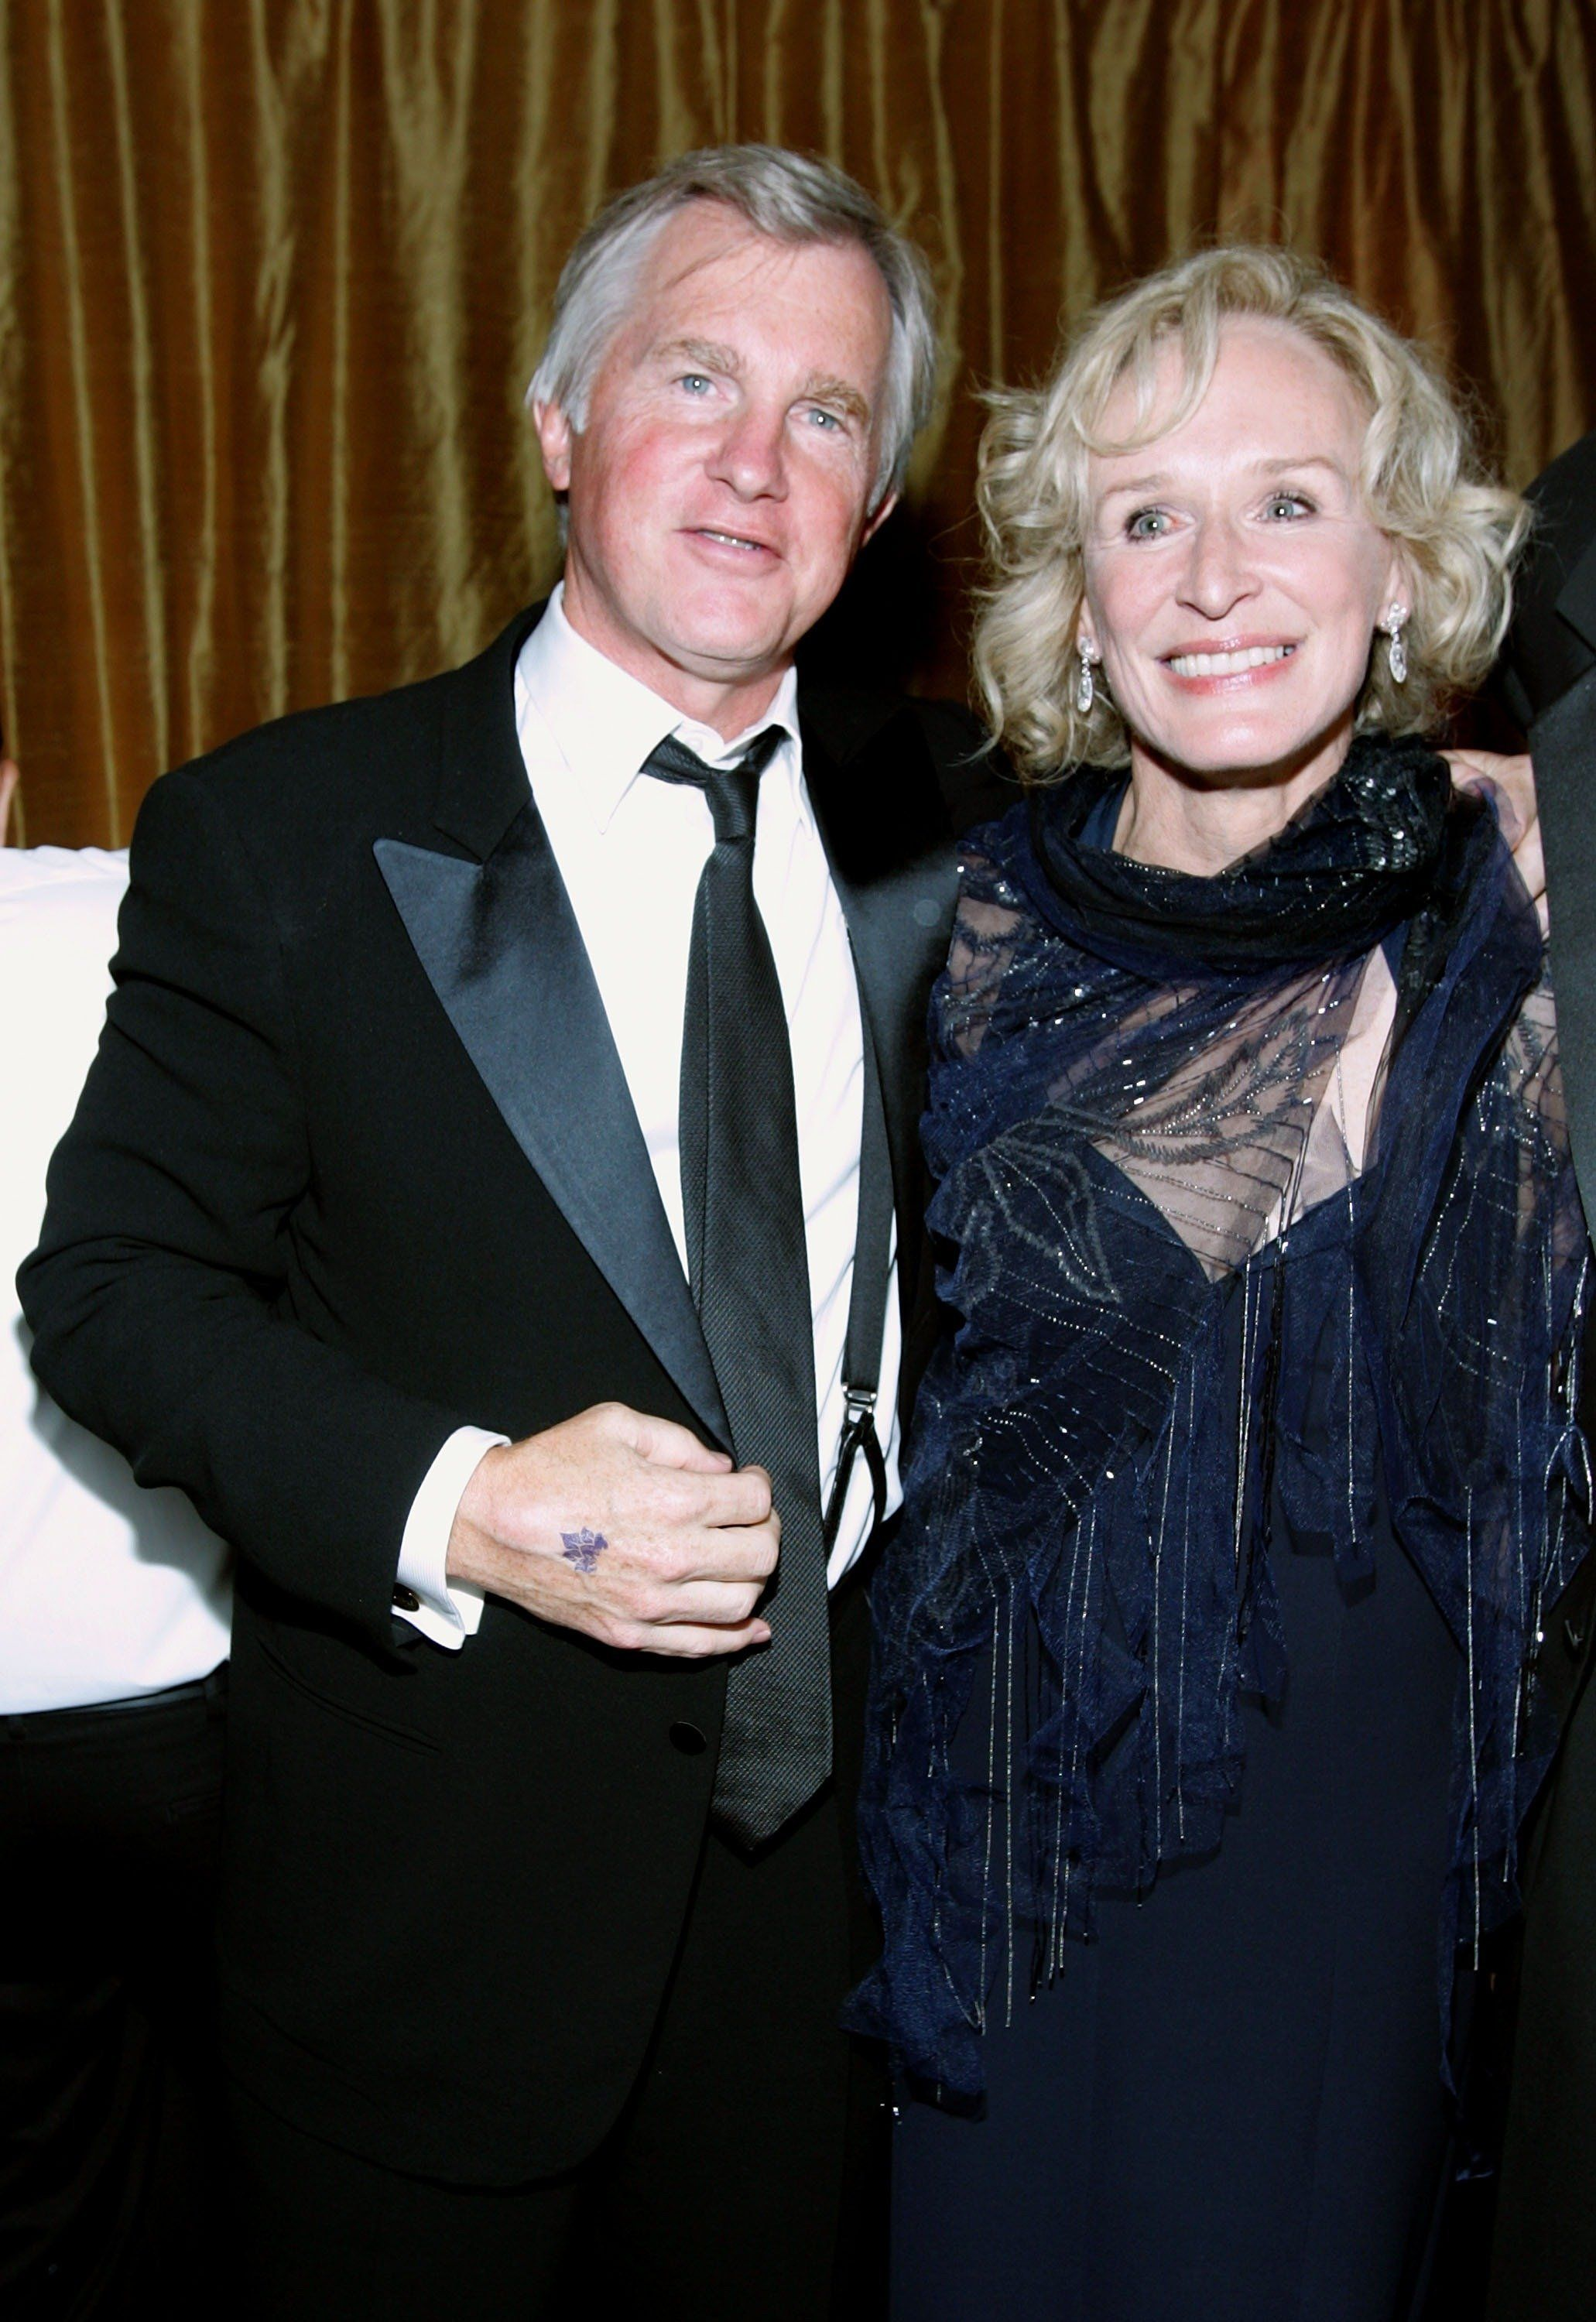 LOS ANGELES, CA - SEPTEMBER 16:  Glenn Close and husband David Shaw attend the 20th Century Fox Emmy Party on September 16, 2007 in Los Angeles, California.  (Photo by Marsaili McGrath/Getty Images)